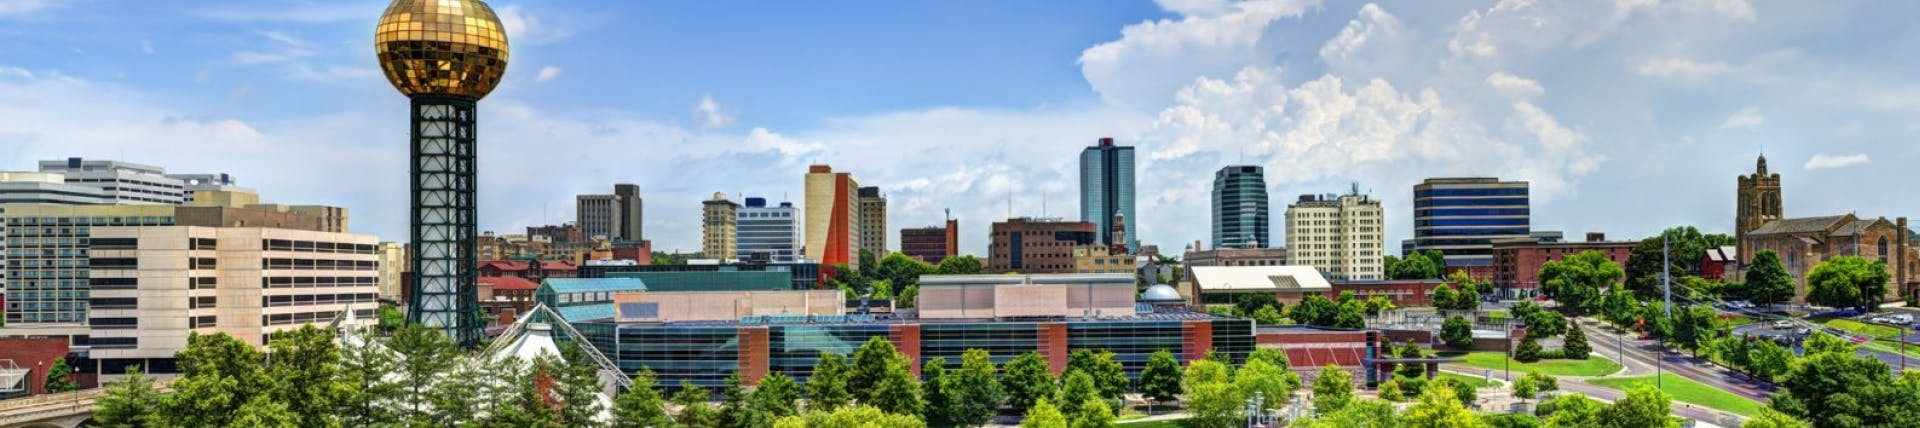 Picture of Knoxville